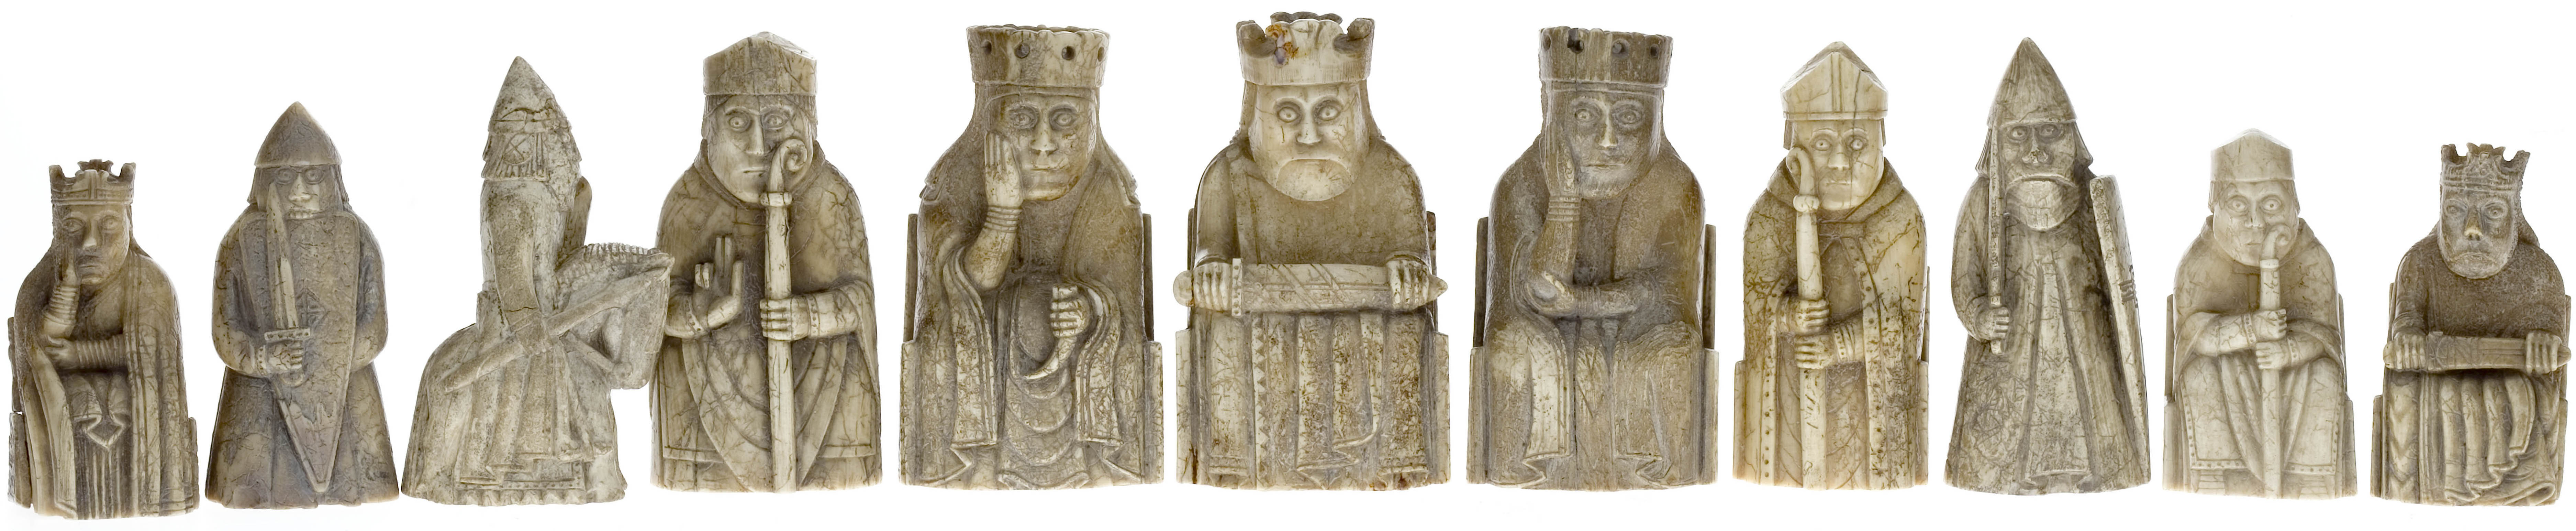 The lewis chessmen golden mean calipers - Lewis chessmen set ...